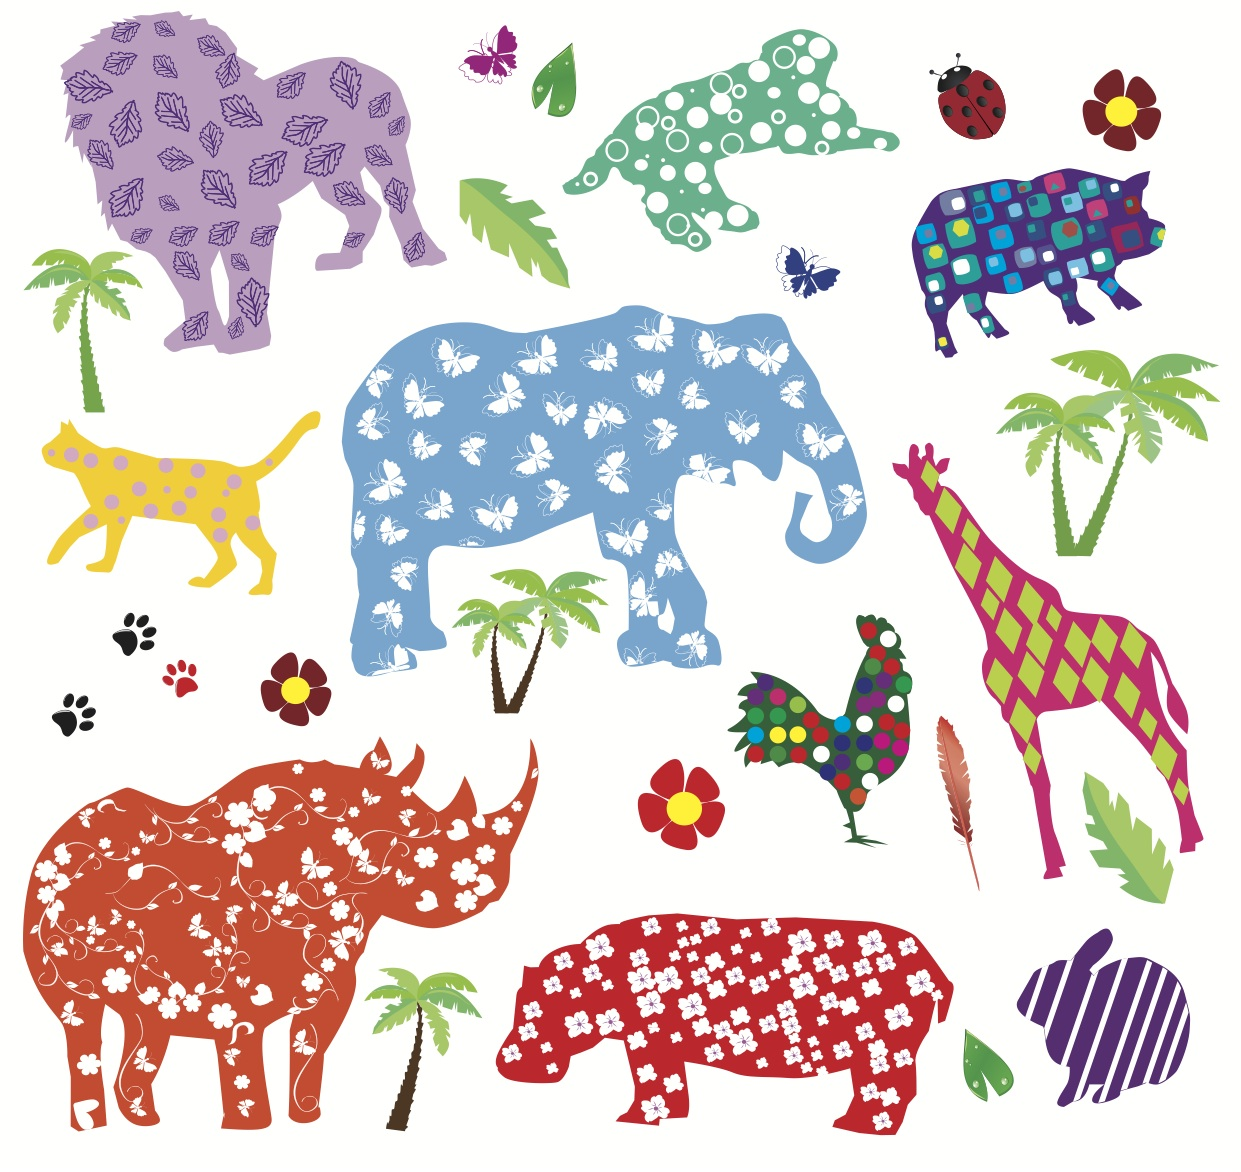 Flowery Animals Wallpaper